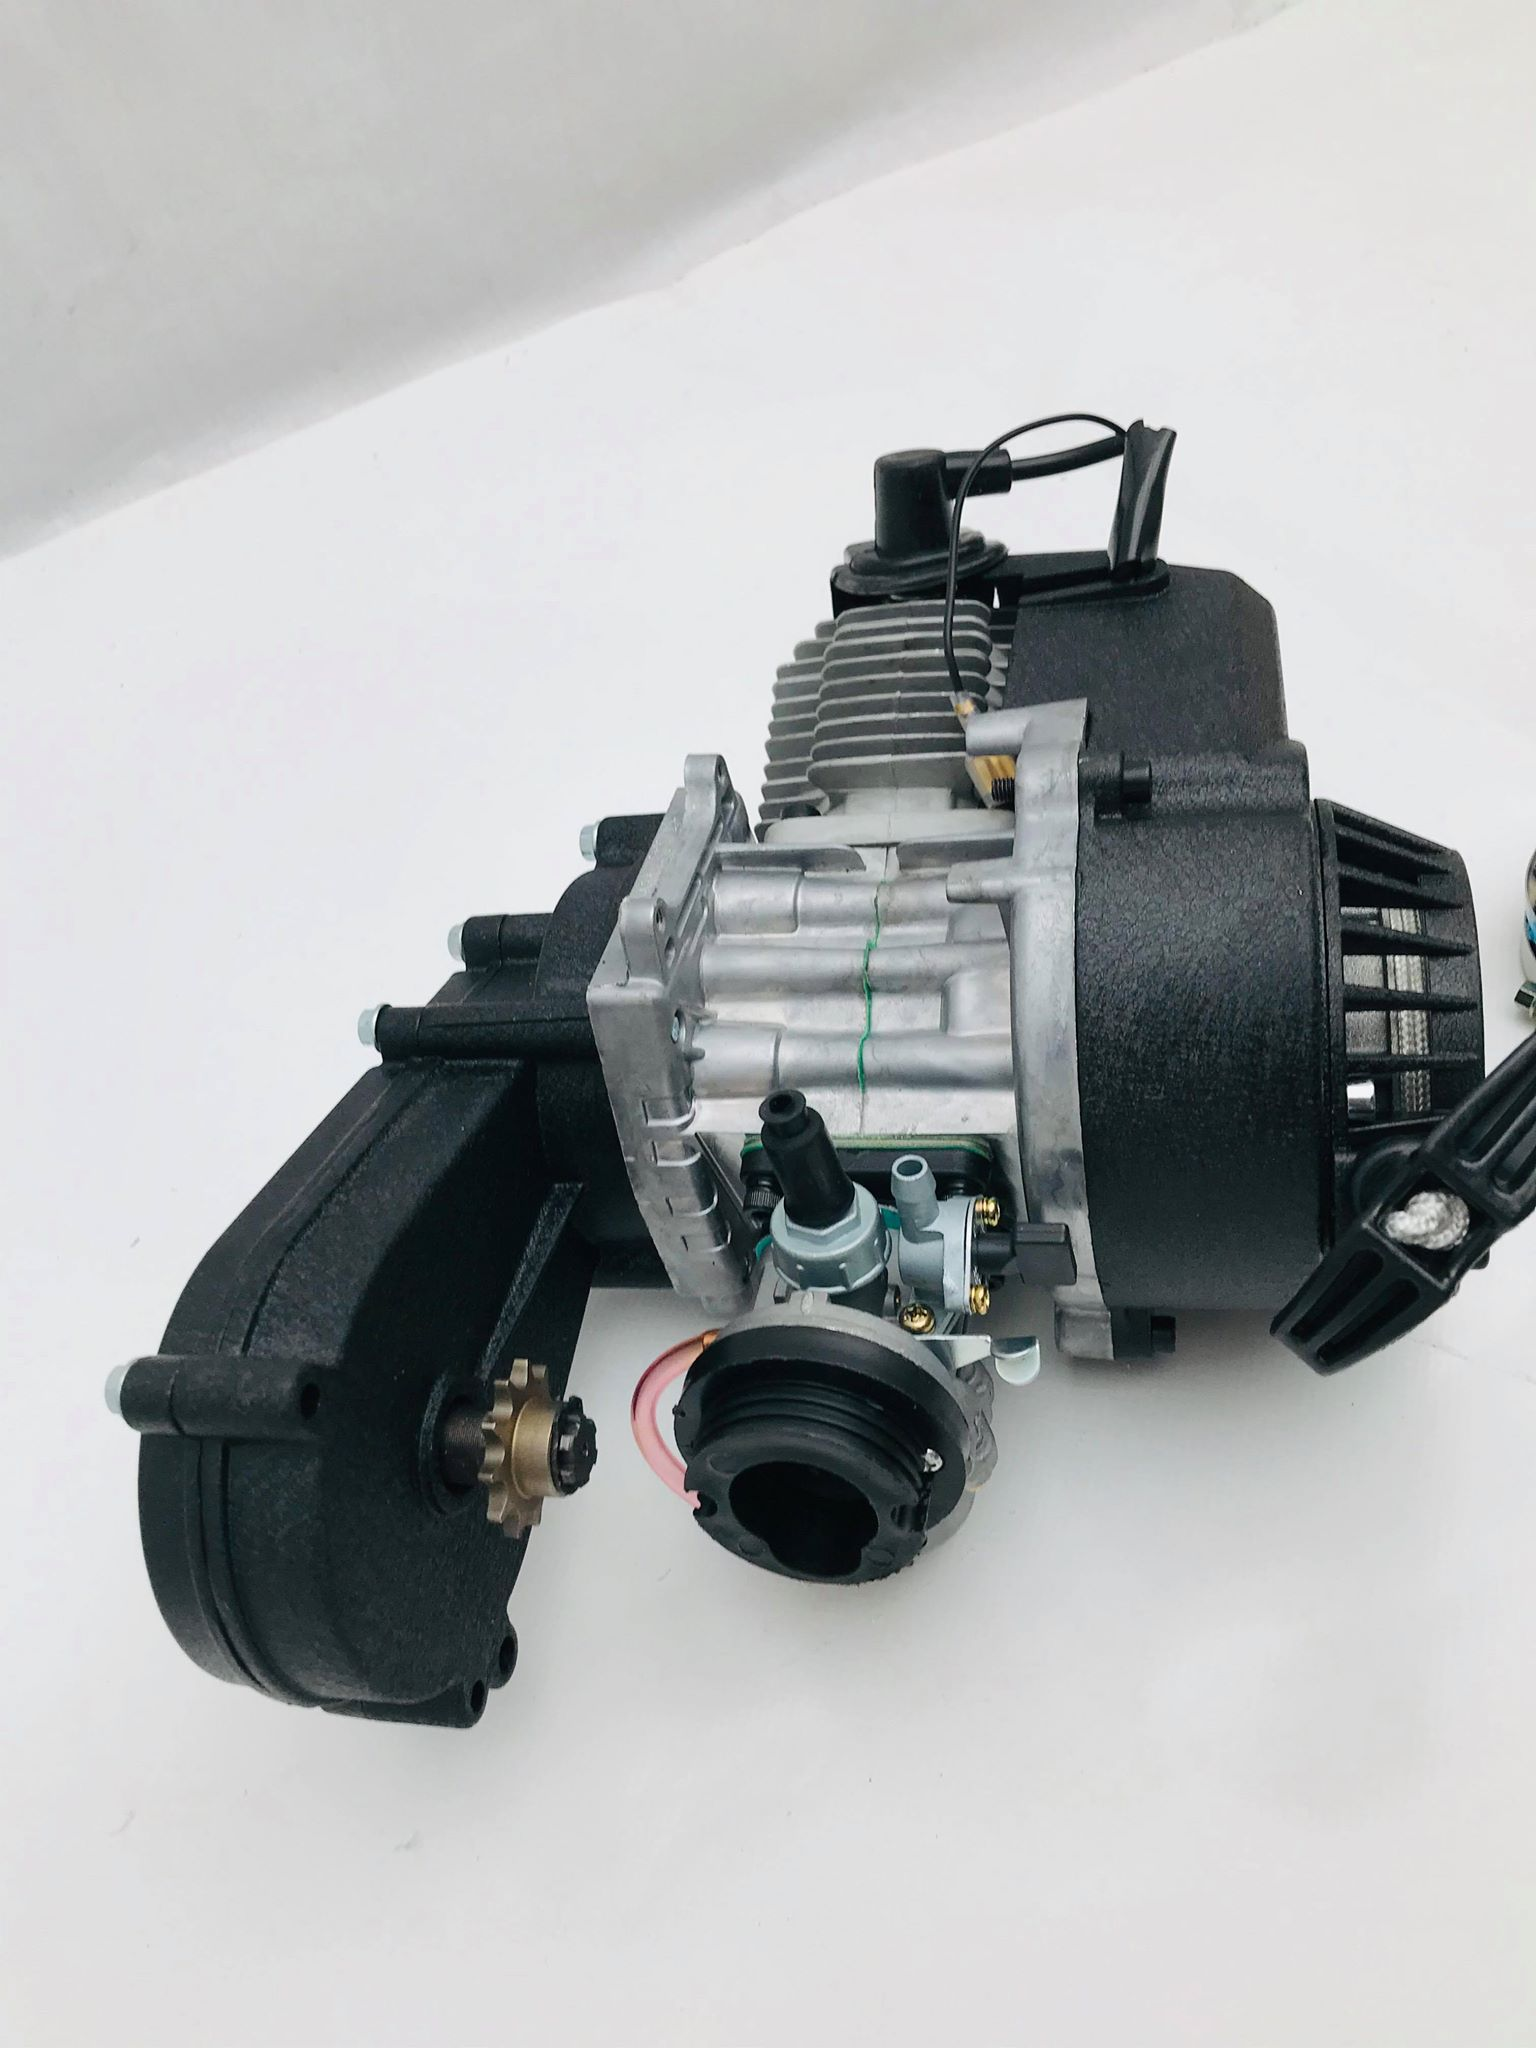 49cc Engine With Carb Gearbox For Mini Moto Dirt Bike Quad